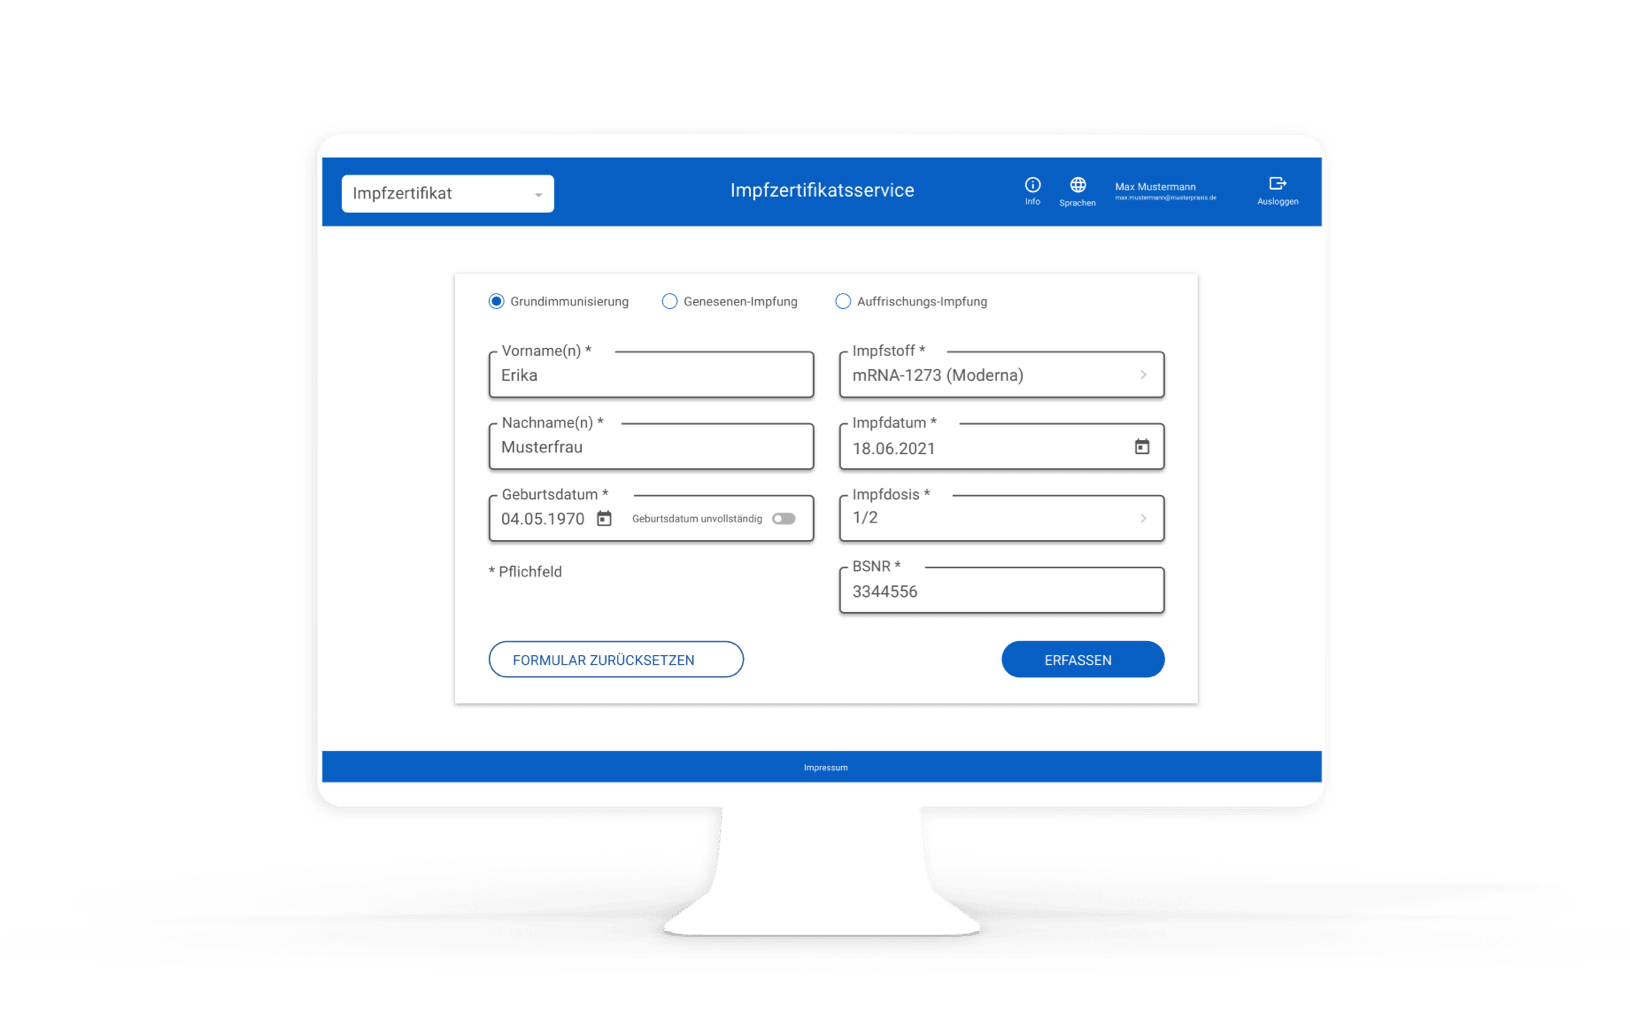 Online form in the web application, with fields for entering data such as the patient's name and date of birth.